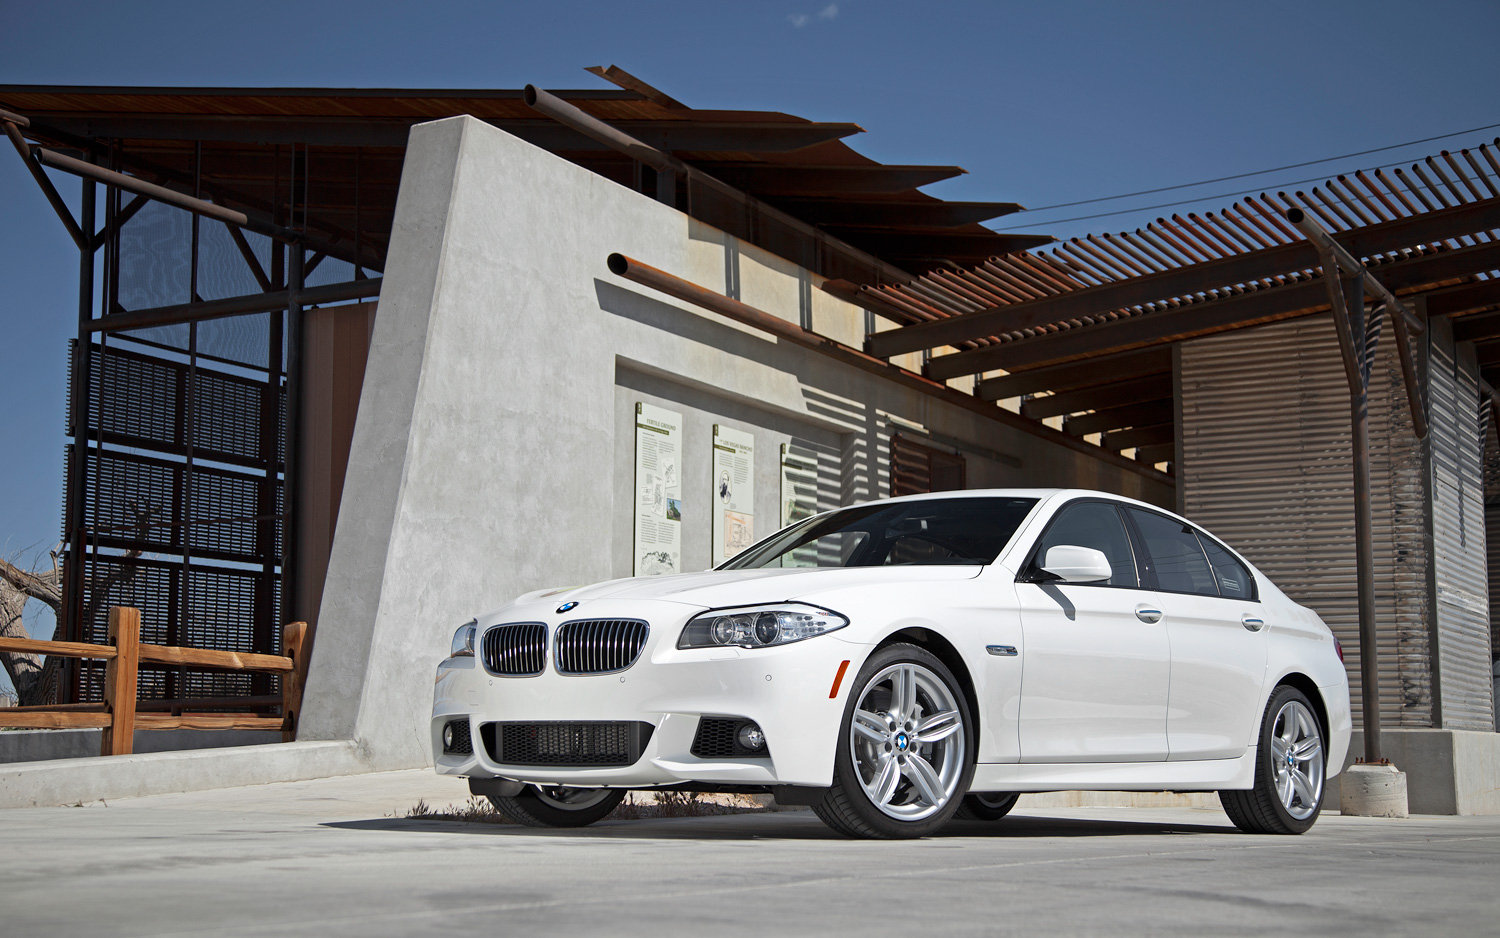 Bmw 535i 2009 Review Amazing Pictures And Images Look At